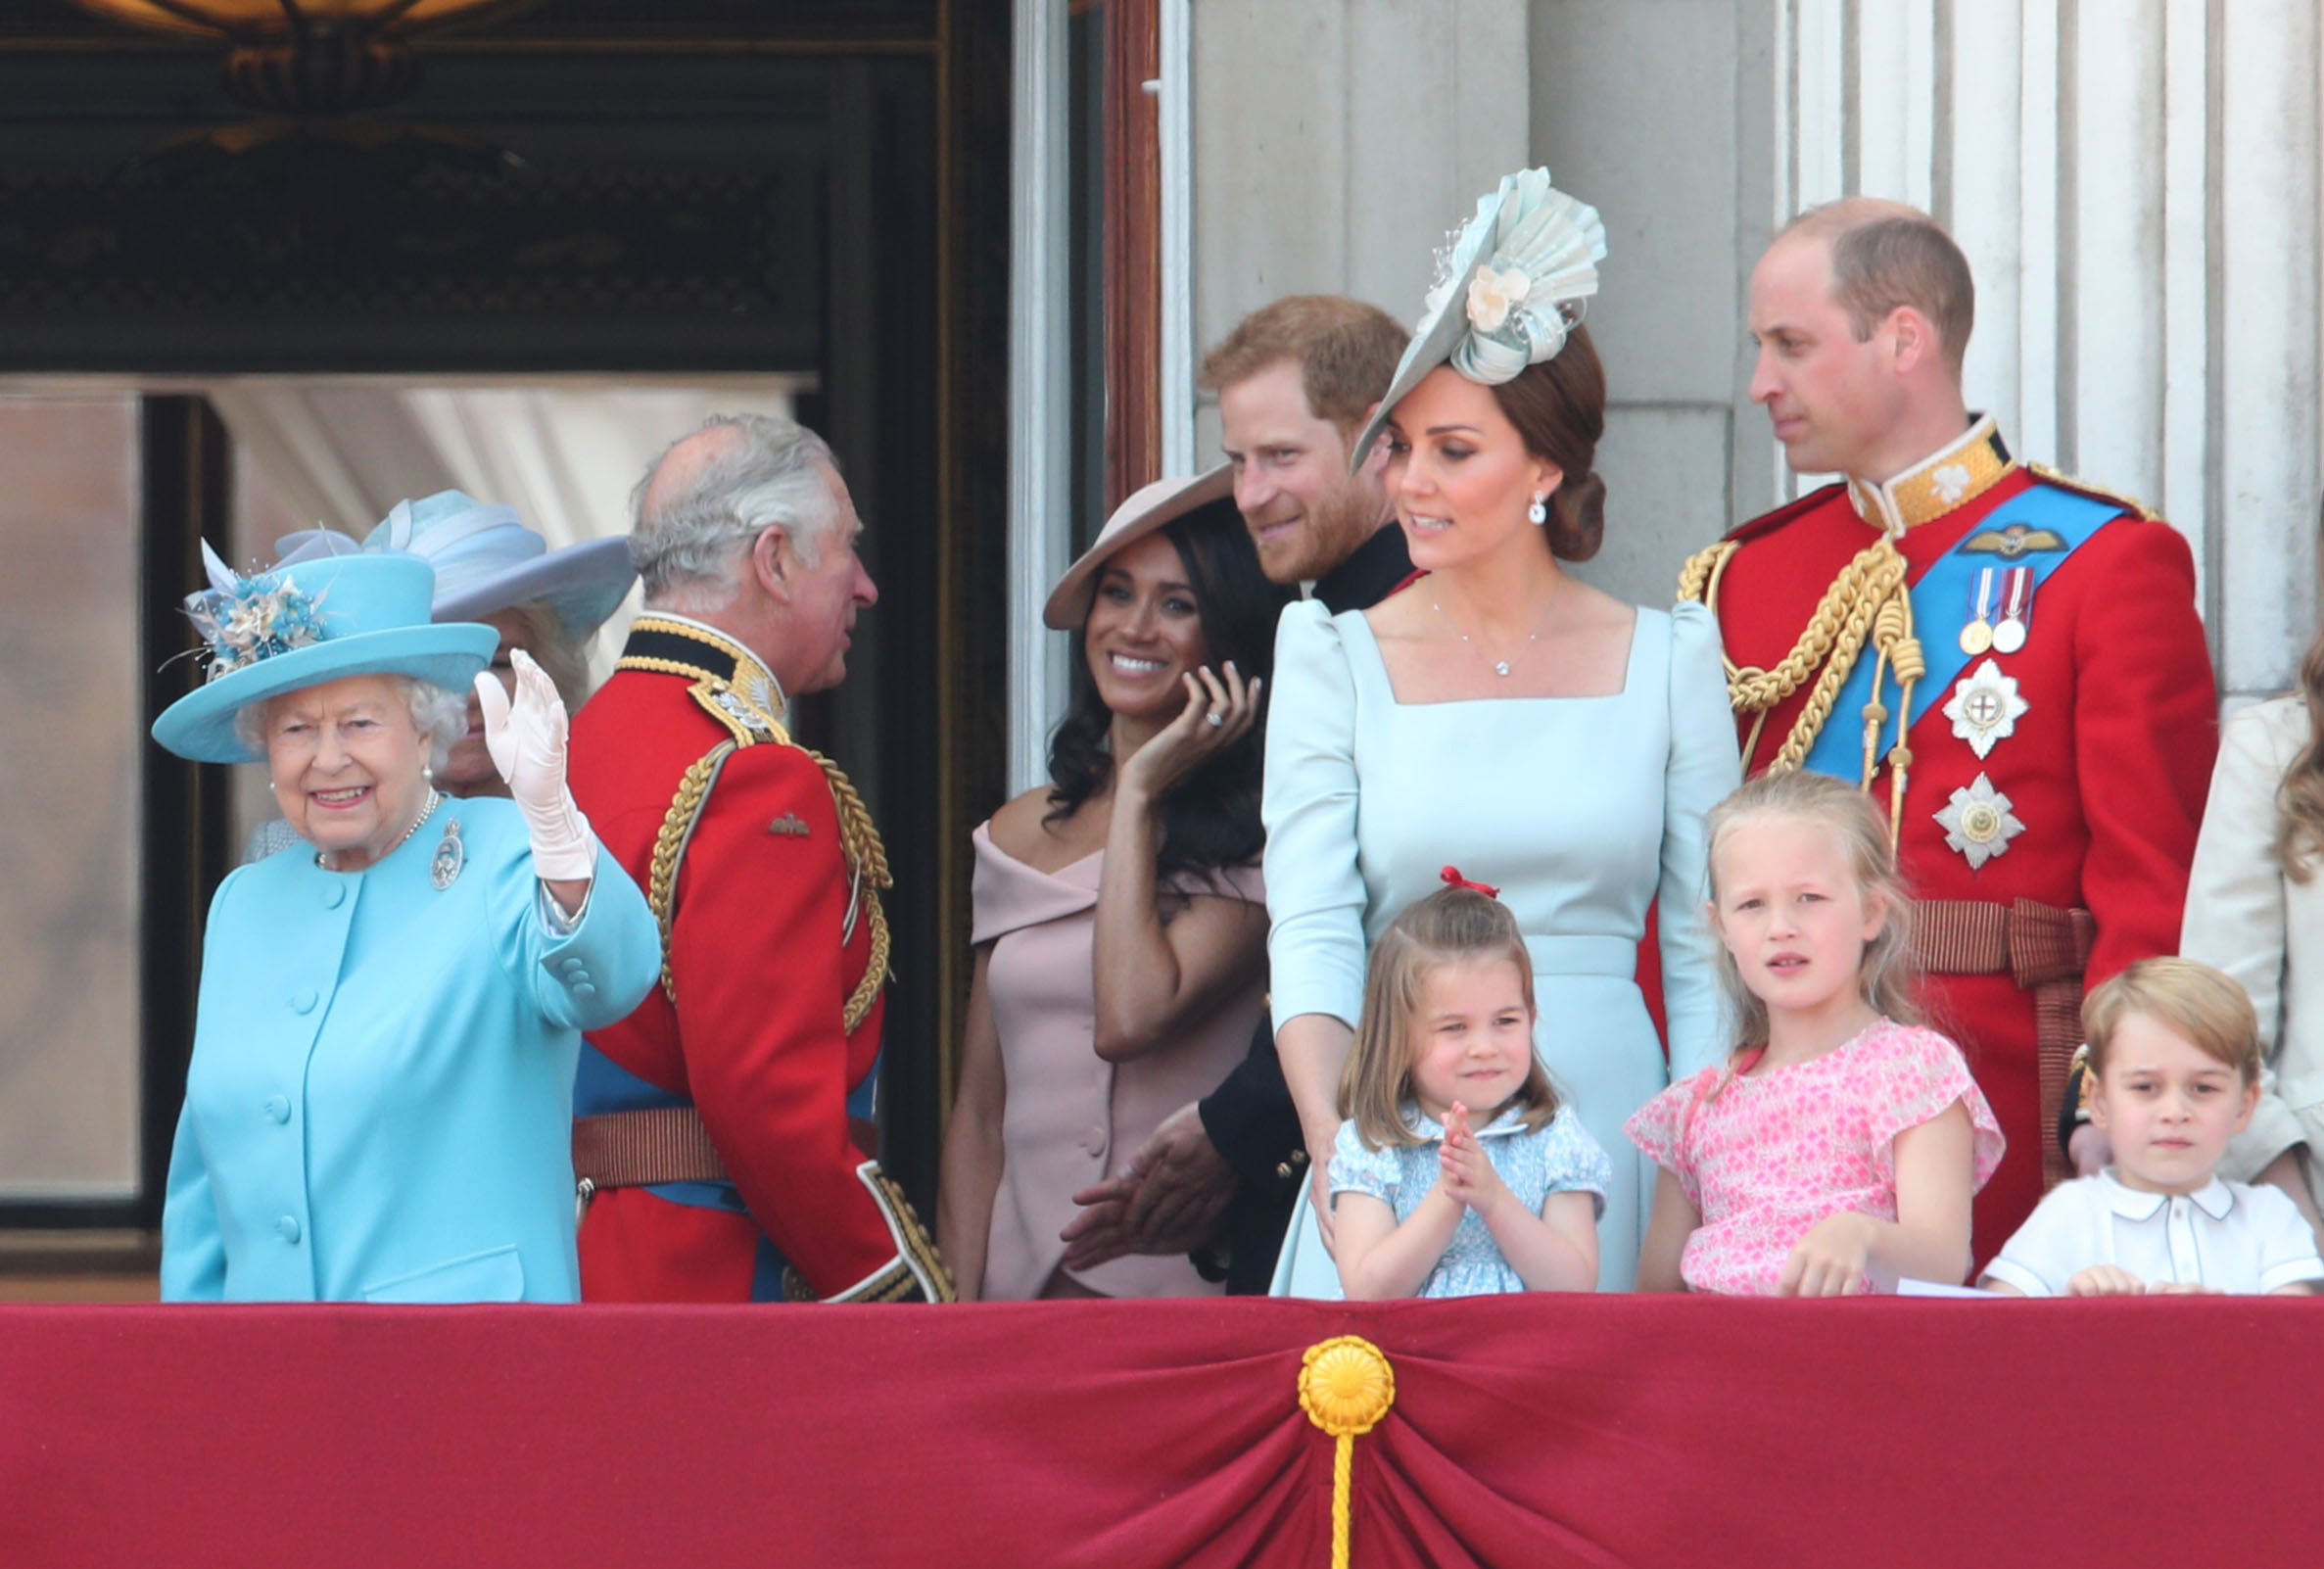 Beaming royals arrive for Easter Sunday service